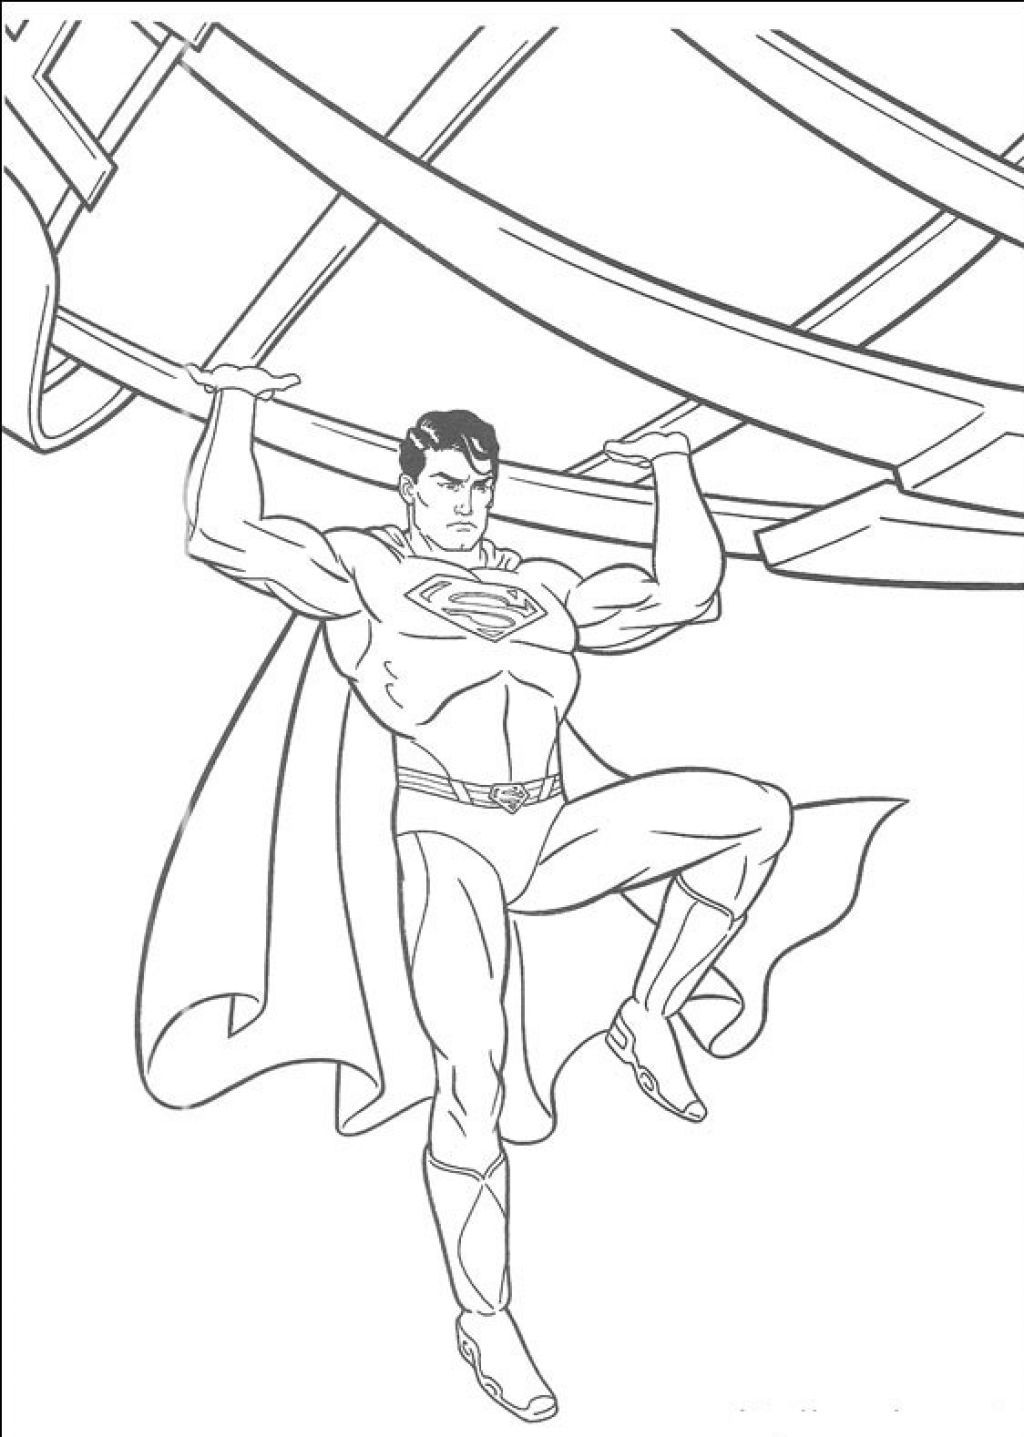 superman coloring pages - Google Search | lecturi, desene animate ...